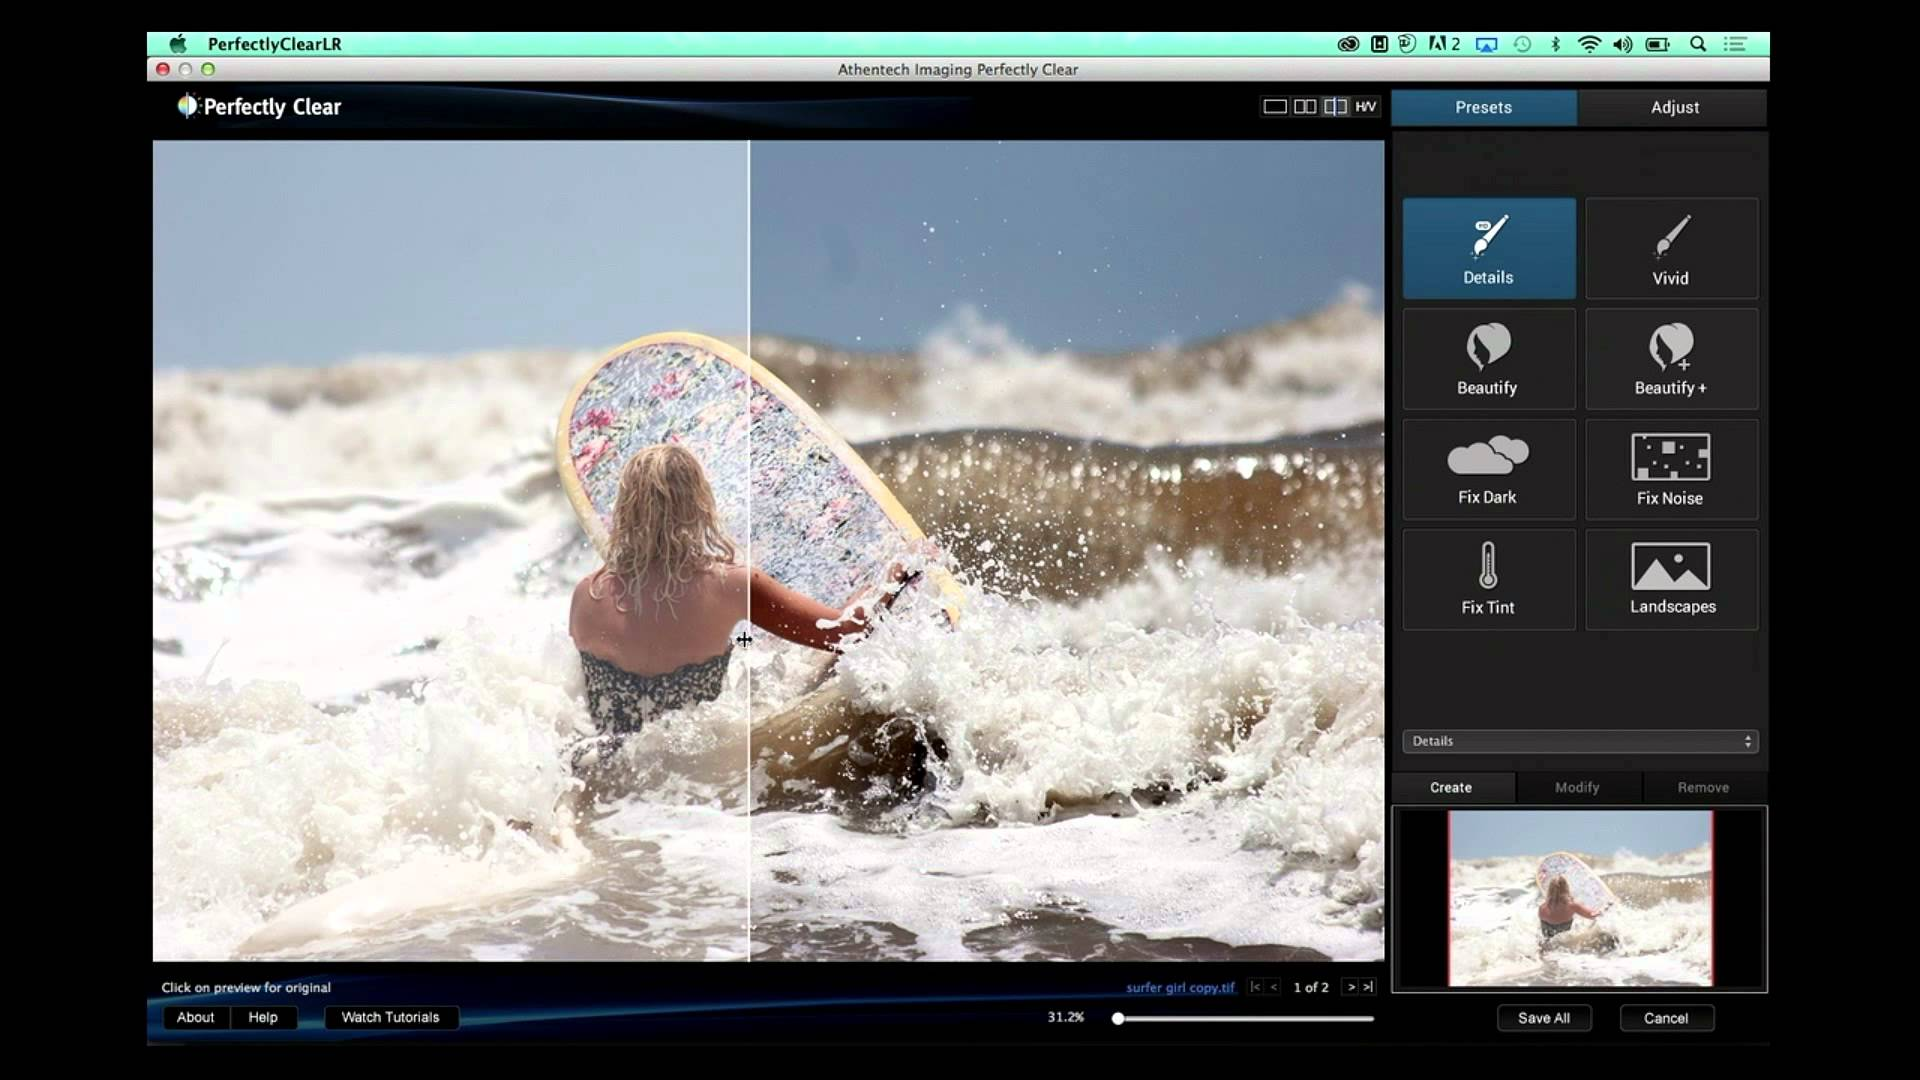 A Quick Look at Perfectly Clear Photoshop & Lightroom Plug-Ins